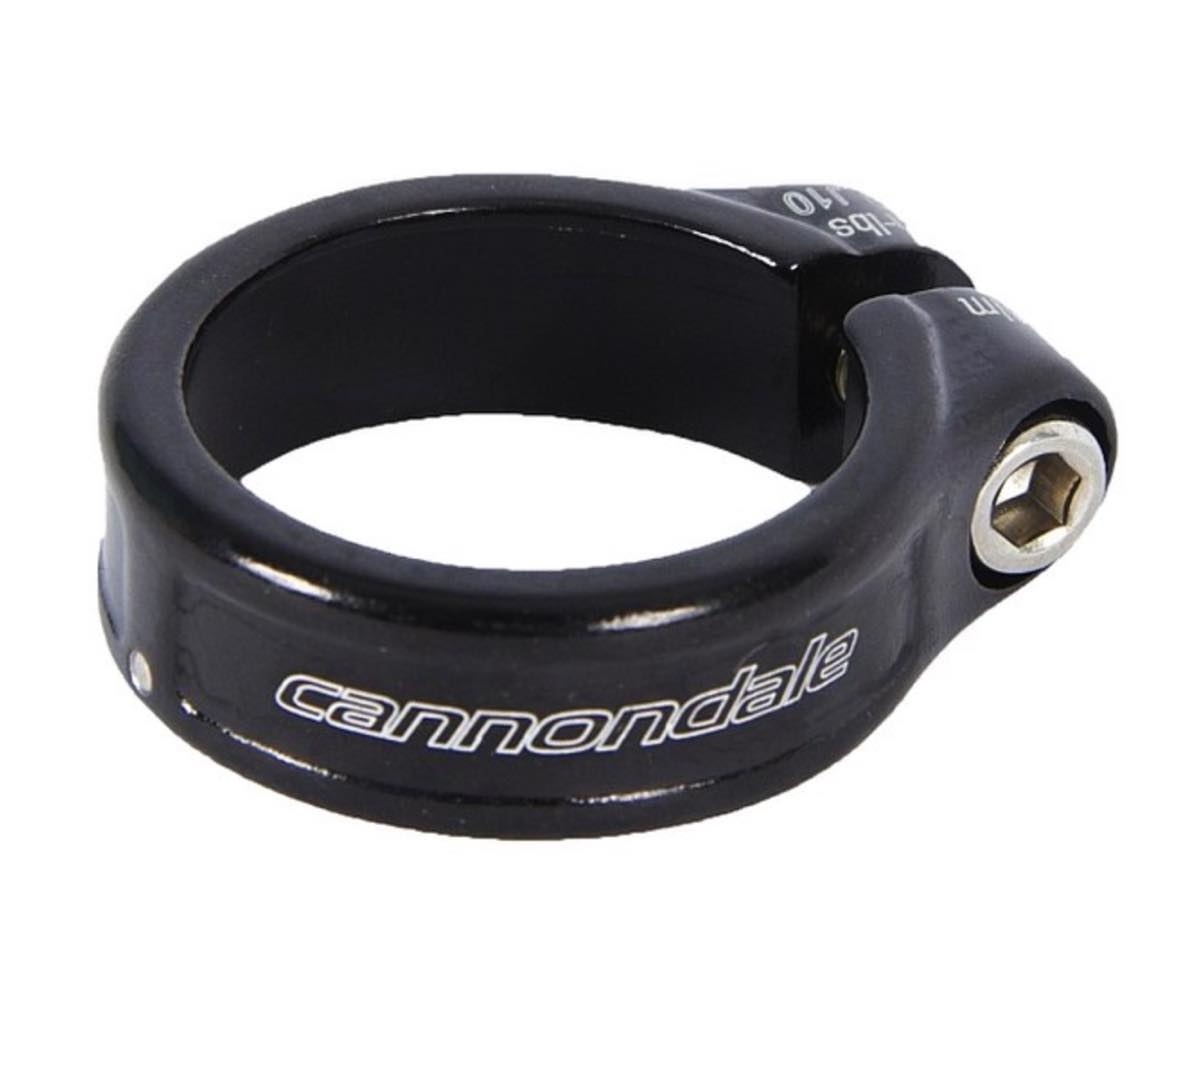 Cannondale sadelklampe sort - KP164/BLK | Seat Clamp